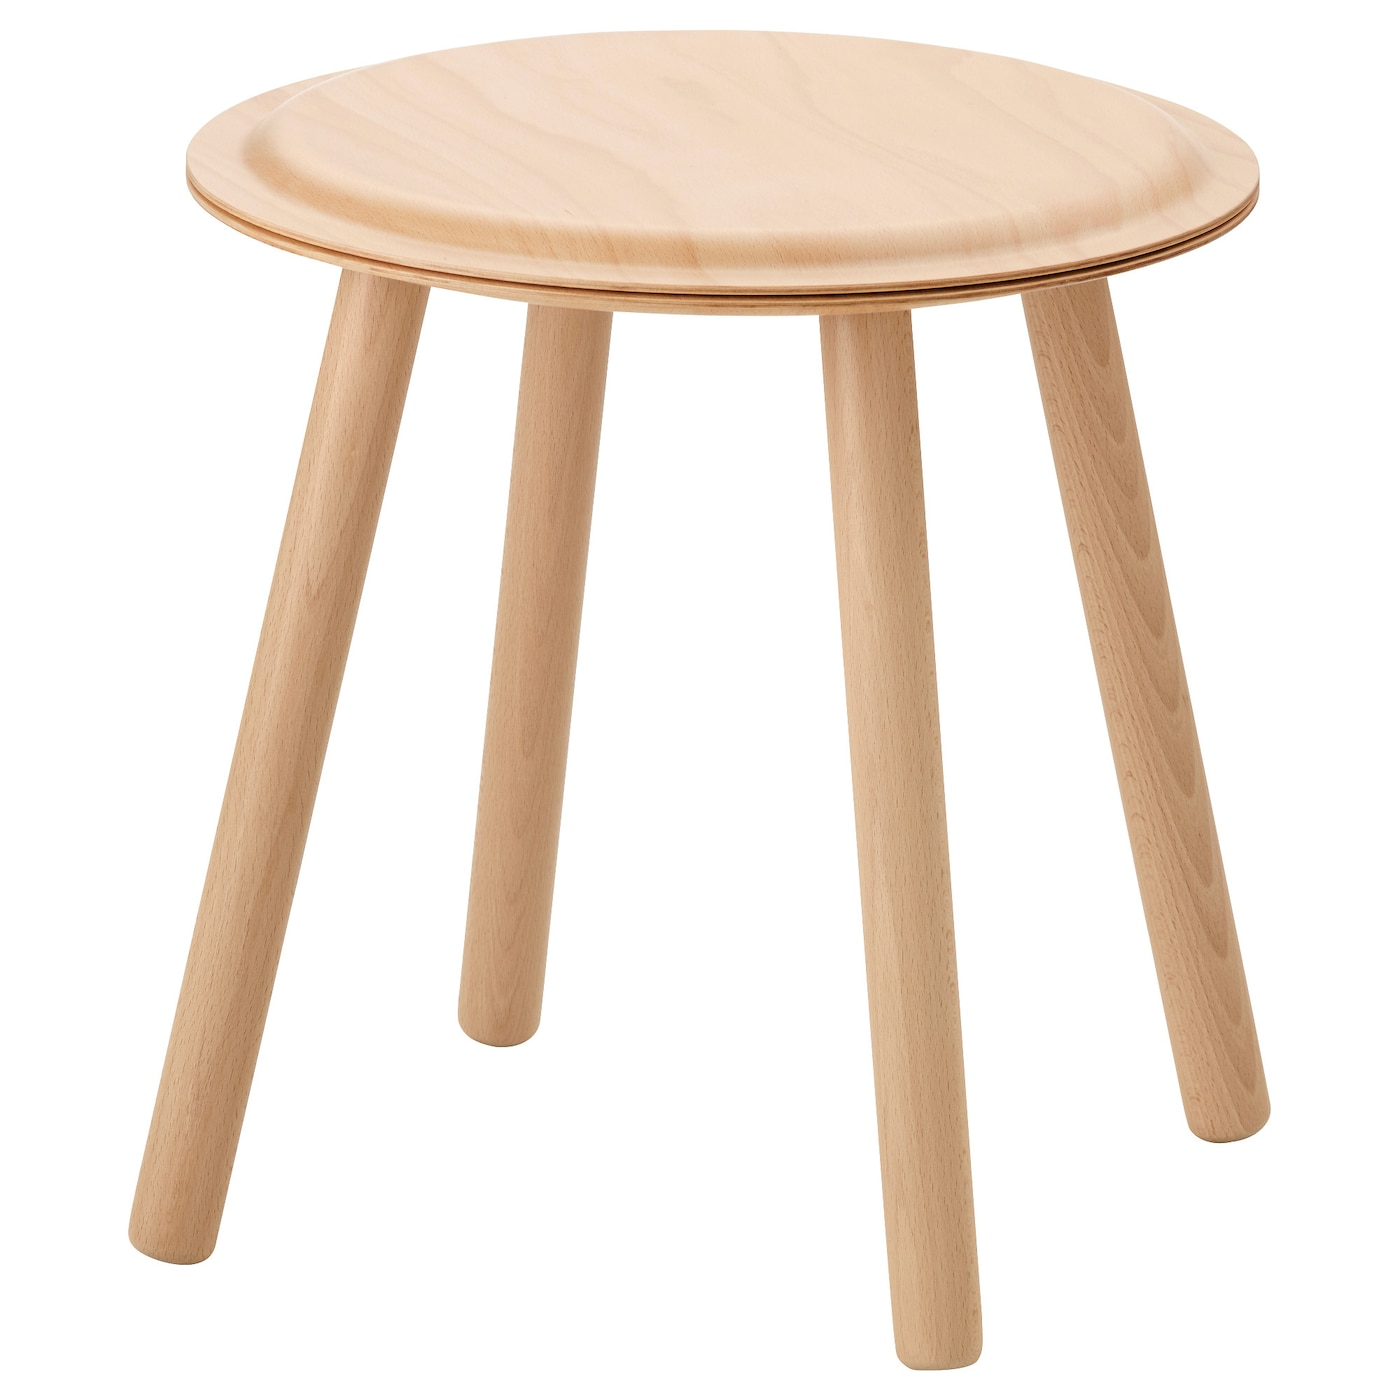 Tabouret tabouret bar ikea - Table d appoint ikea ...